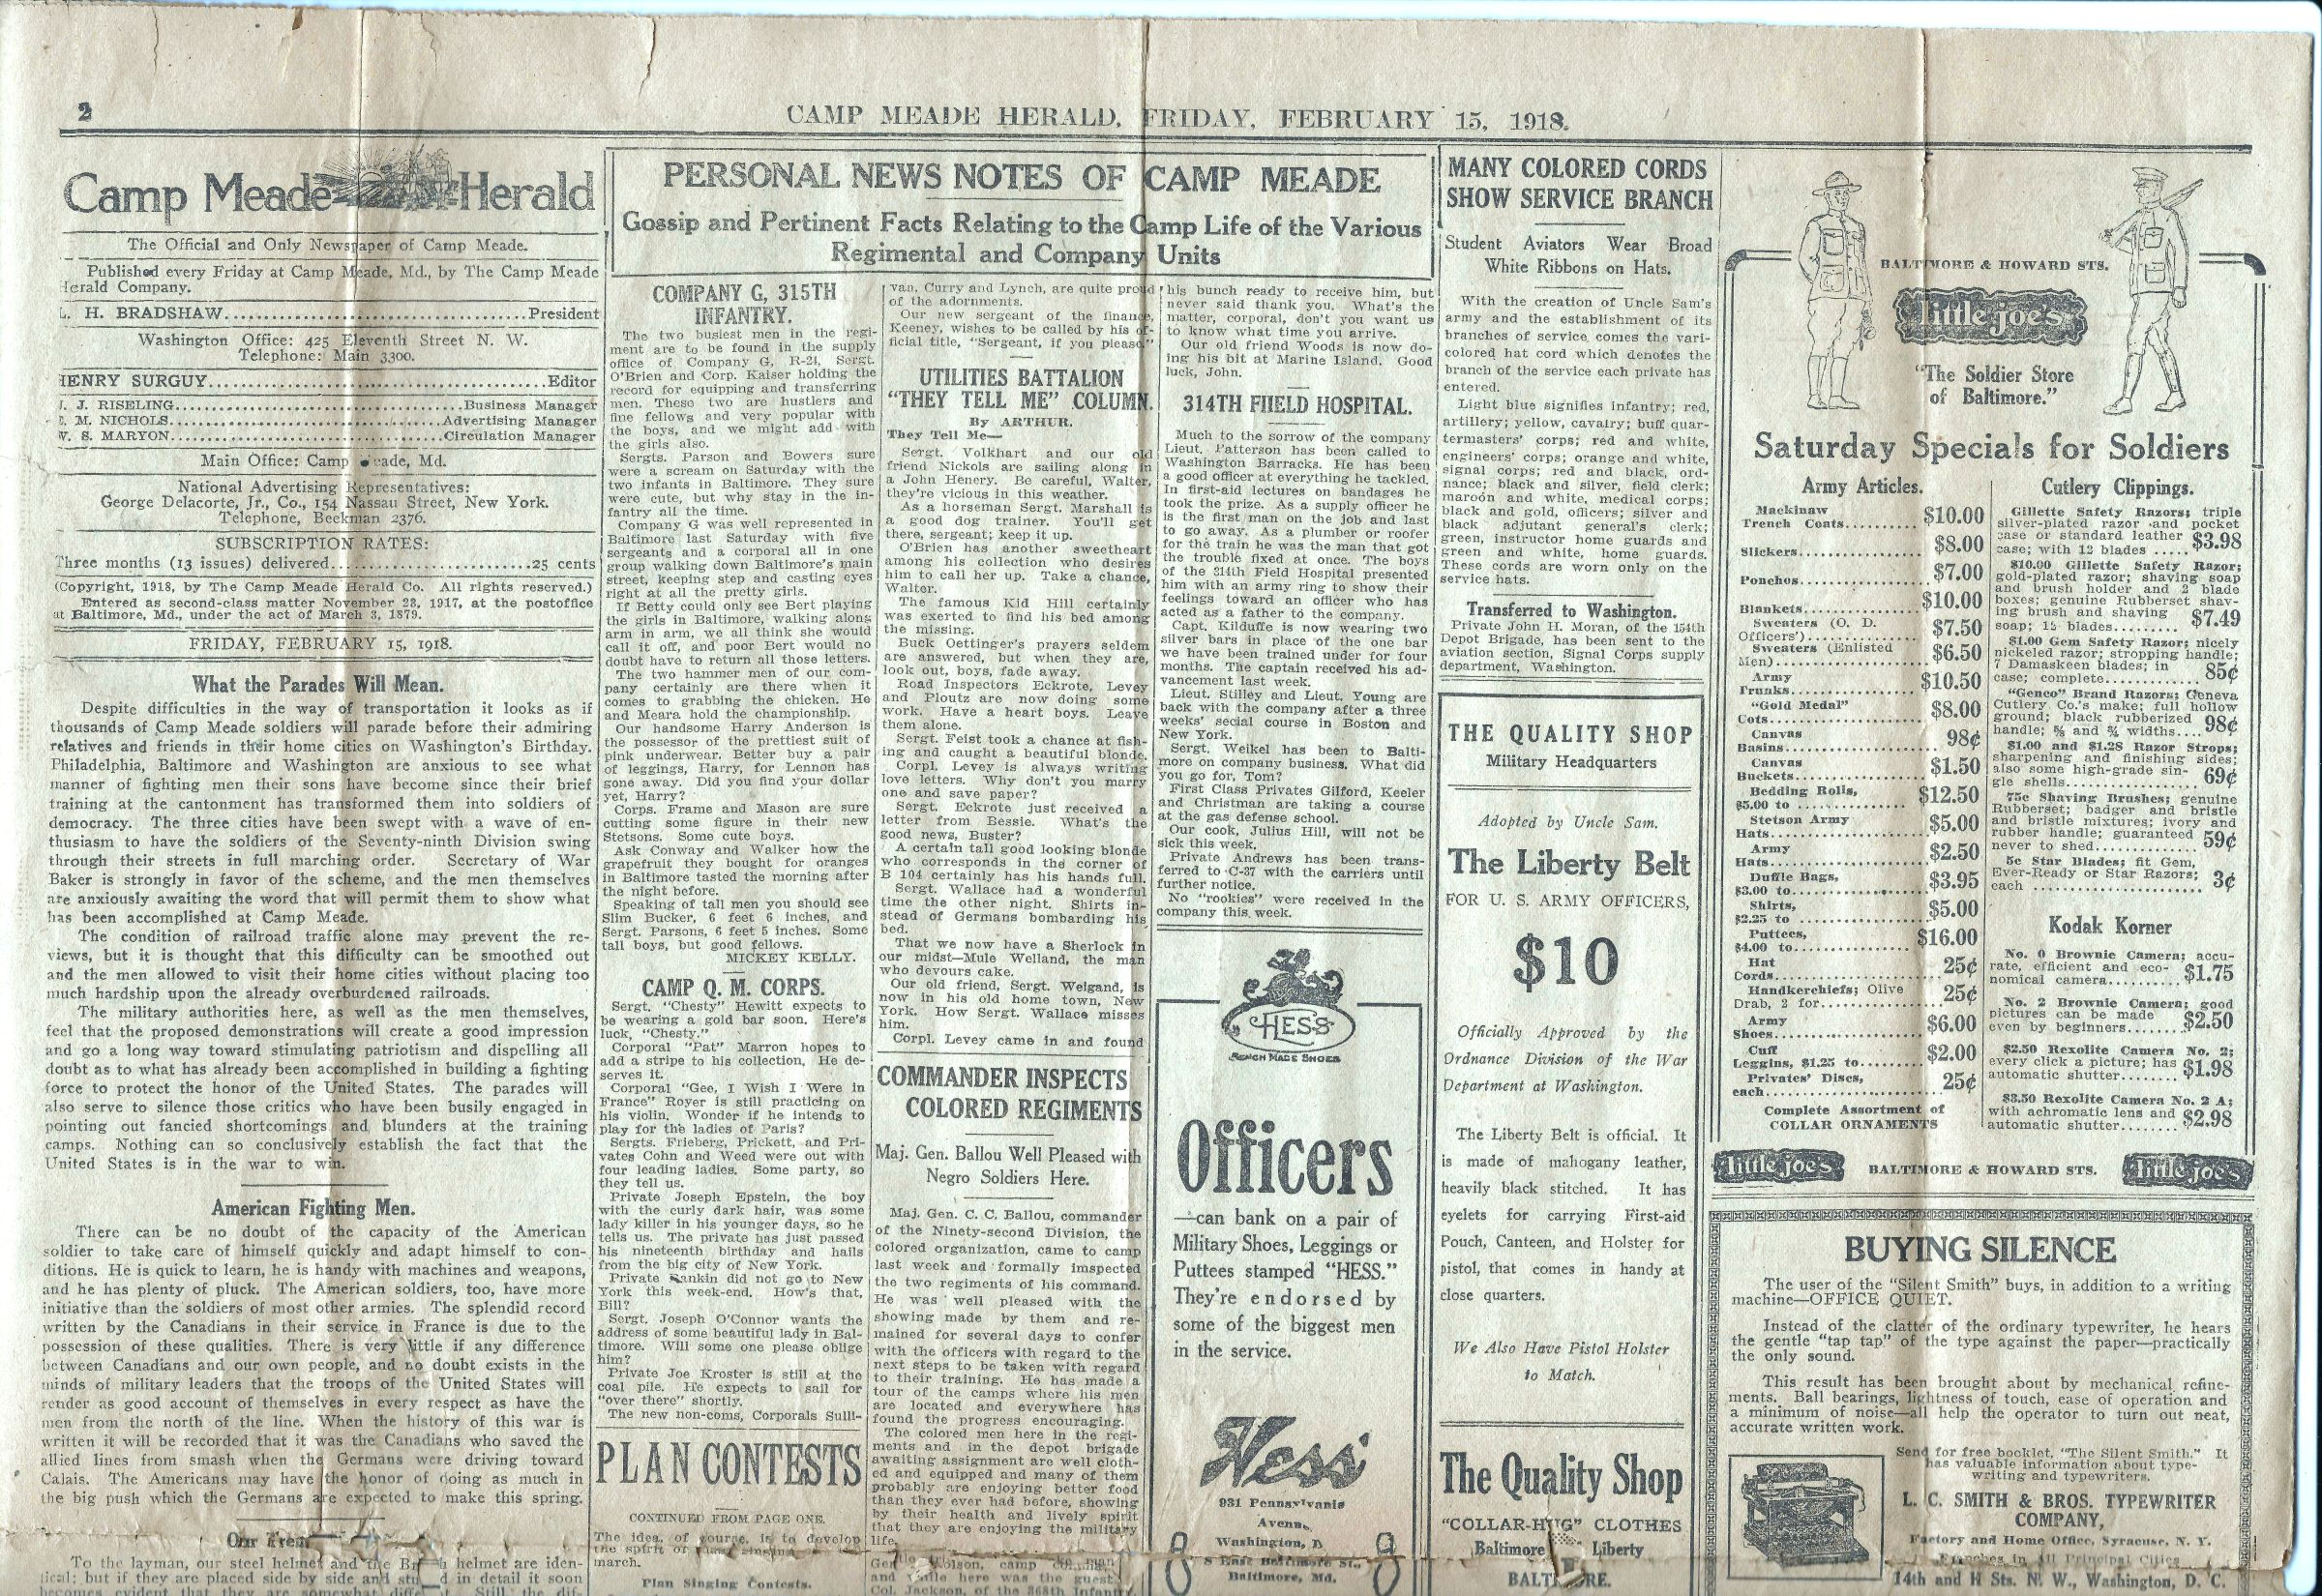 Camp Meade Herald newspaper - February 15 1918 - Page 2 Top